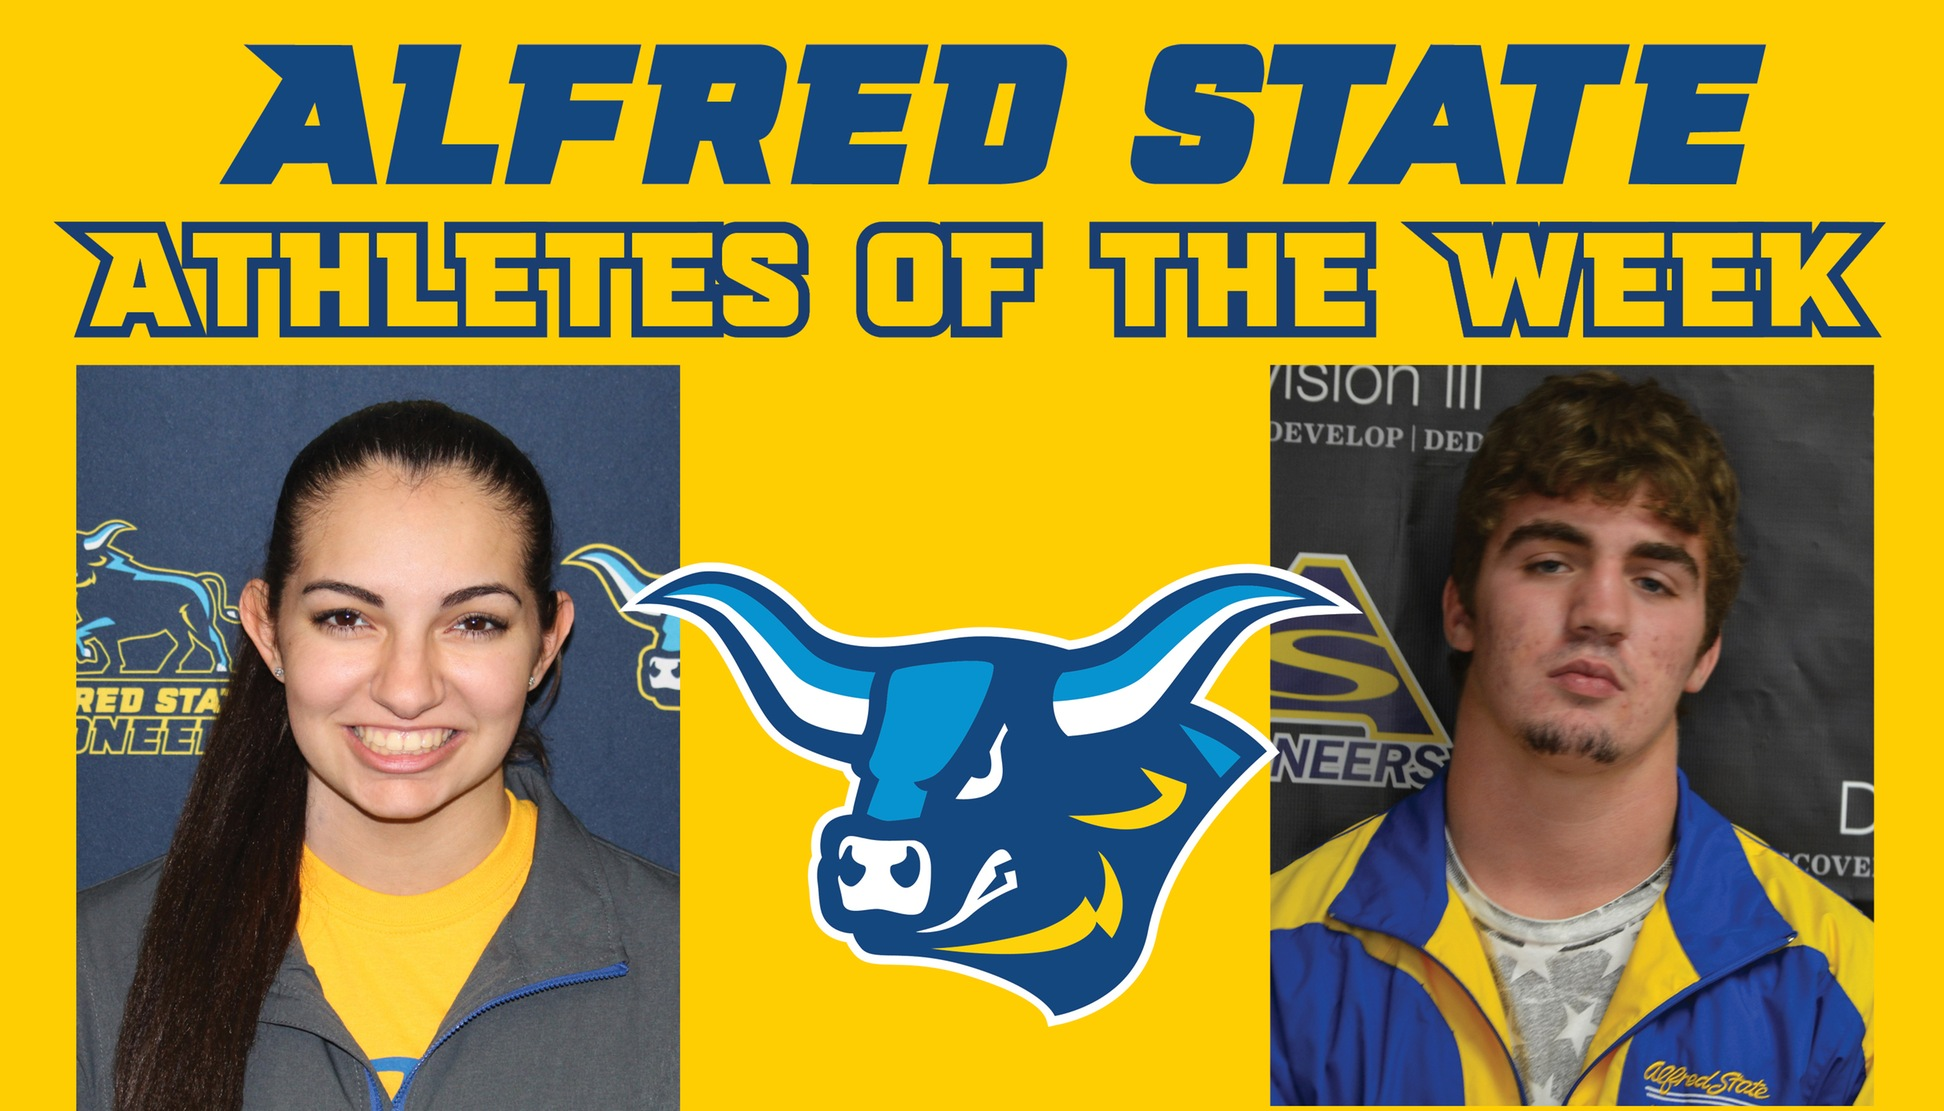 Jessie LaRue and Tristan Almeter named Athletes of the Week